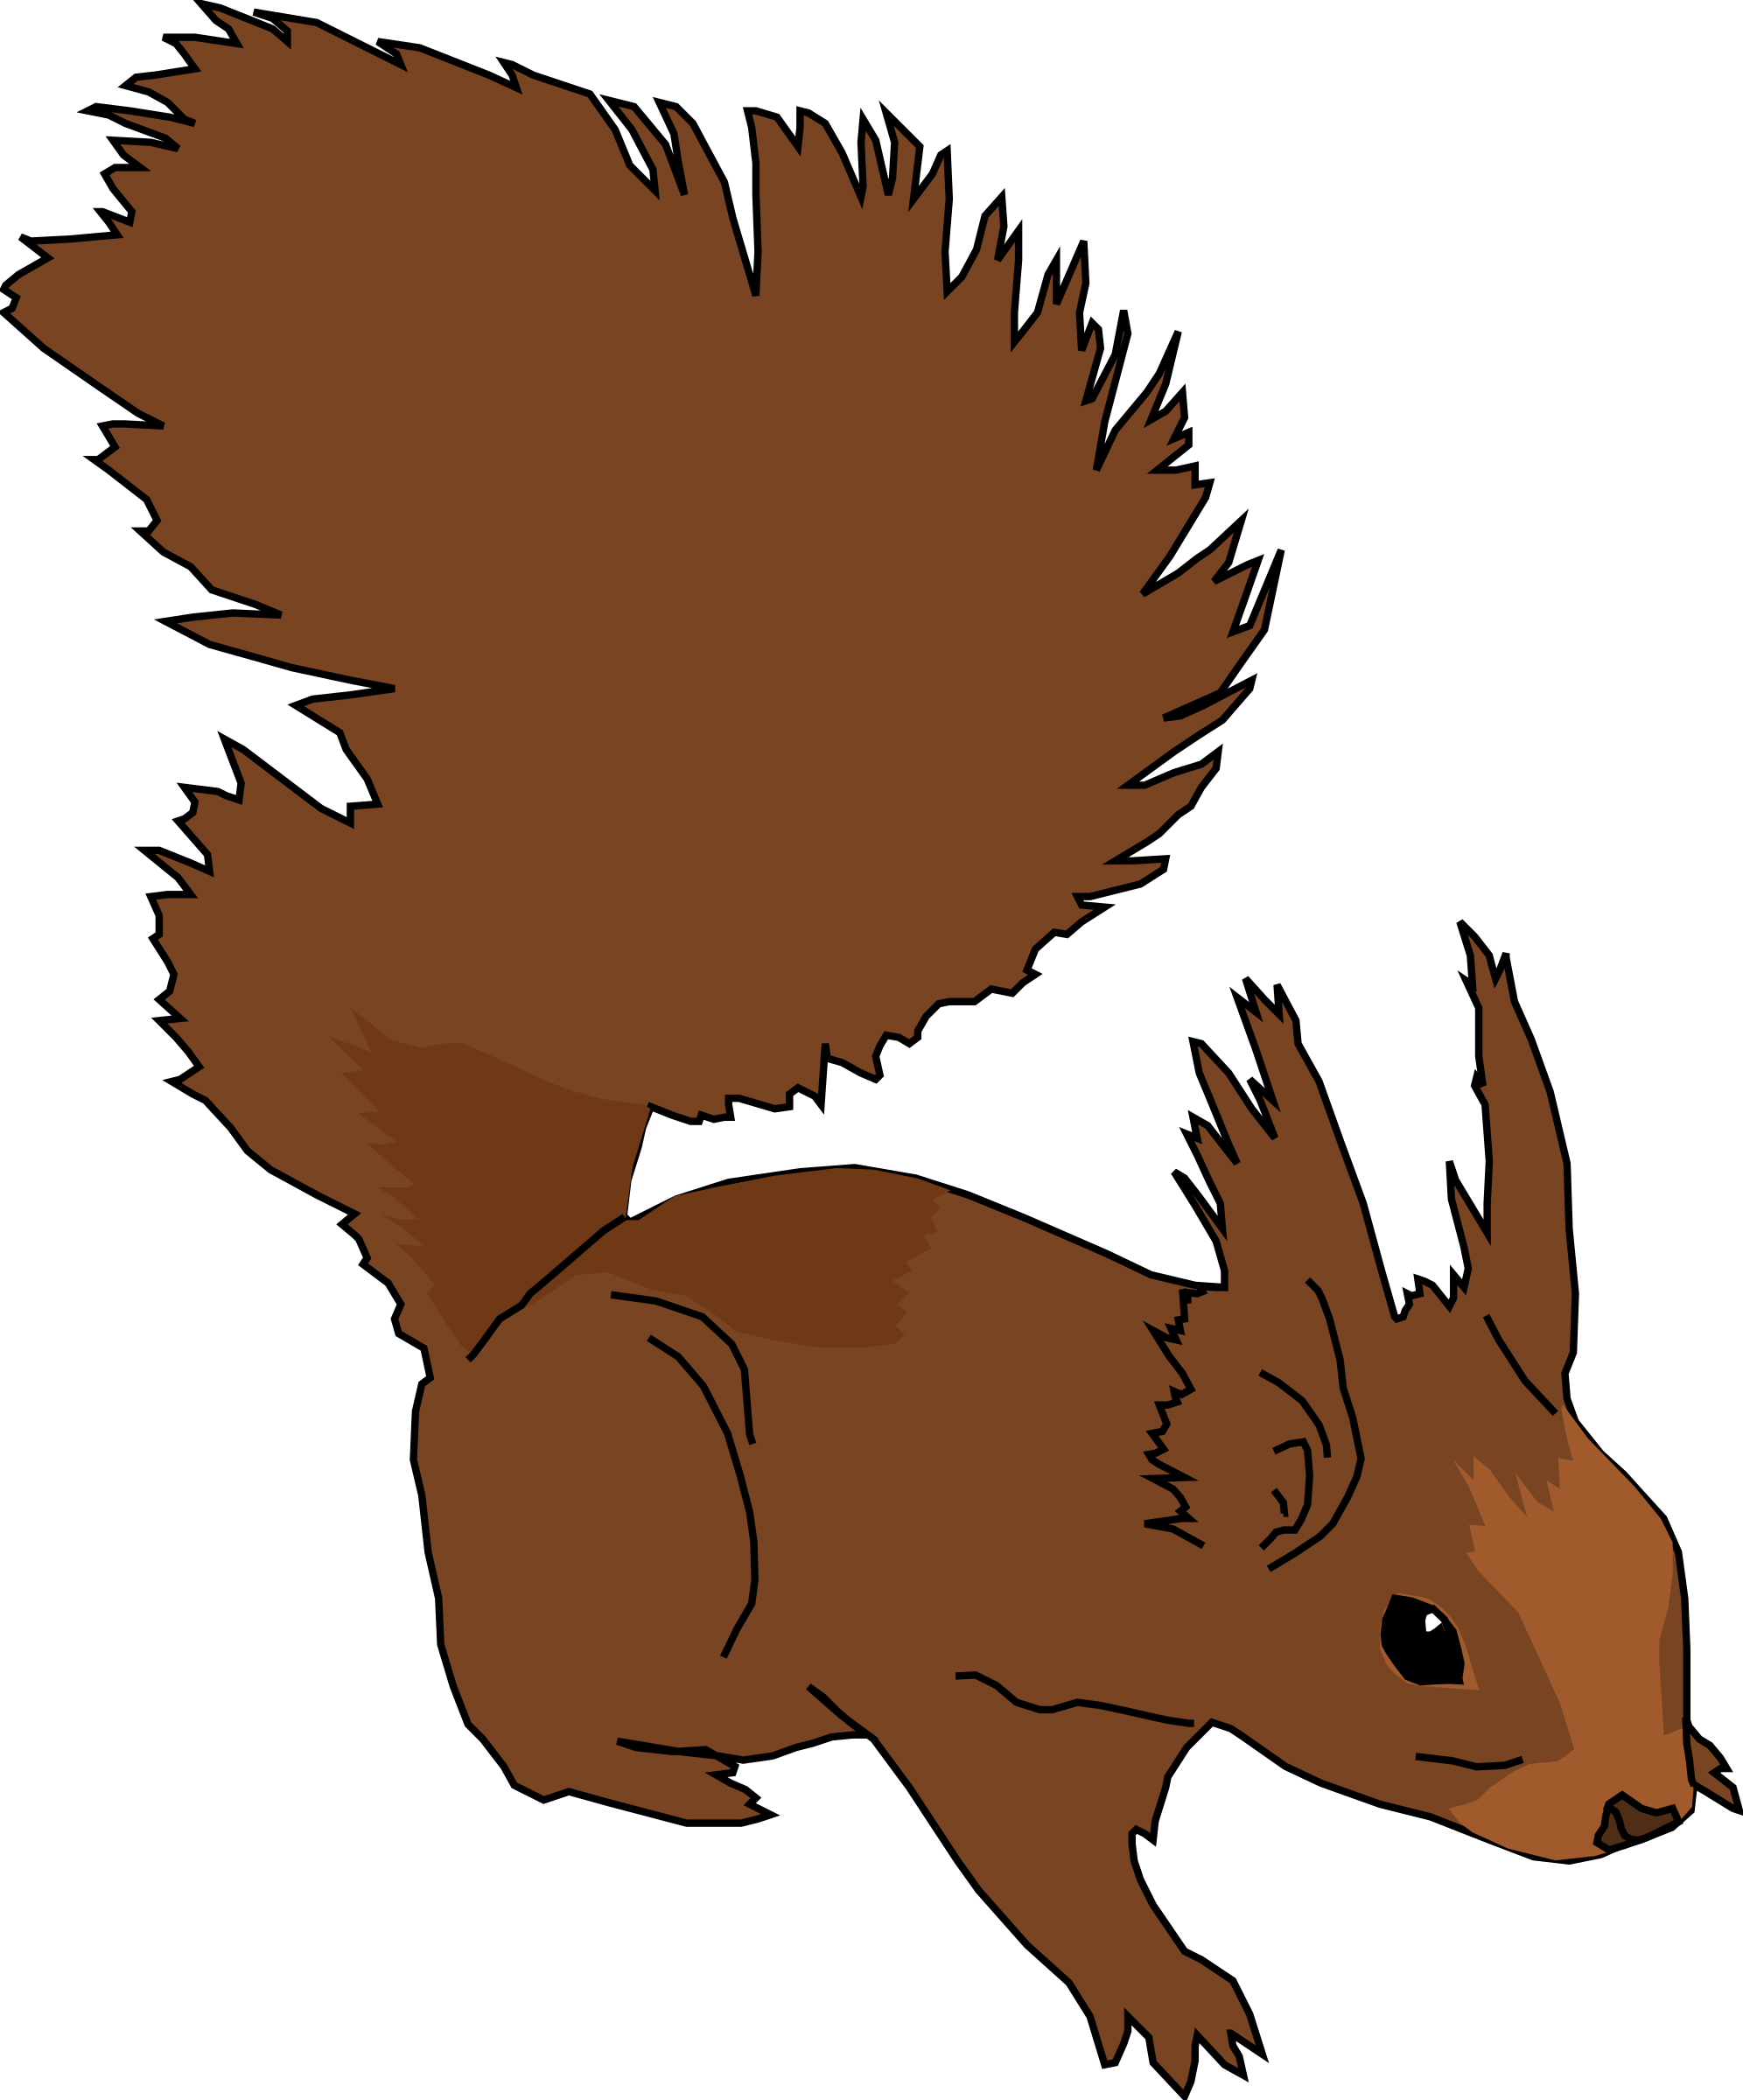 Squirrel by gingercoons